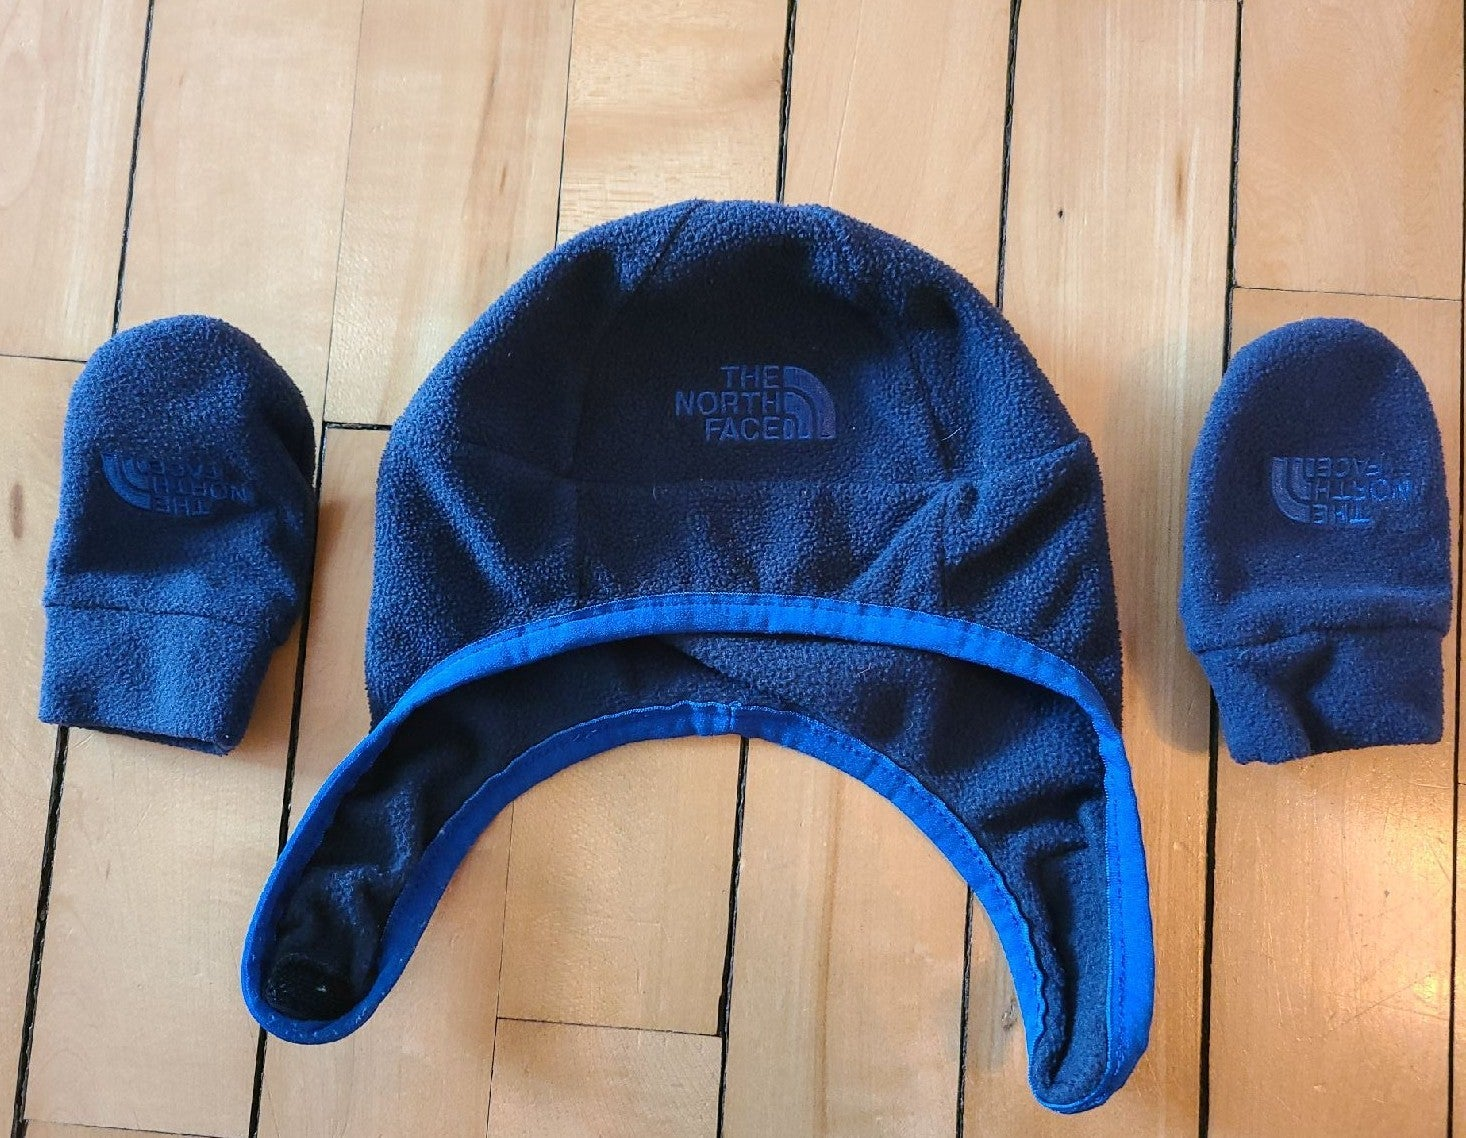 The North Face hat and mittens